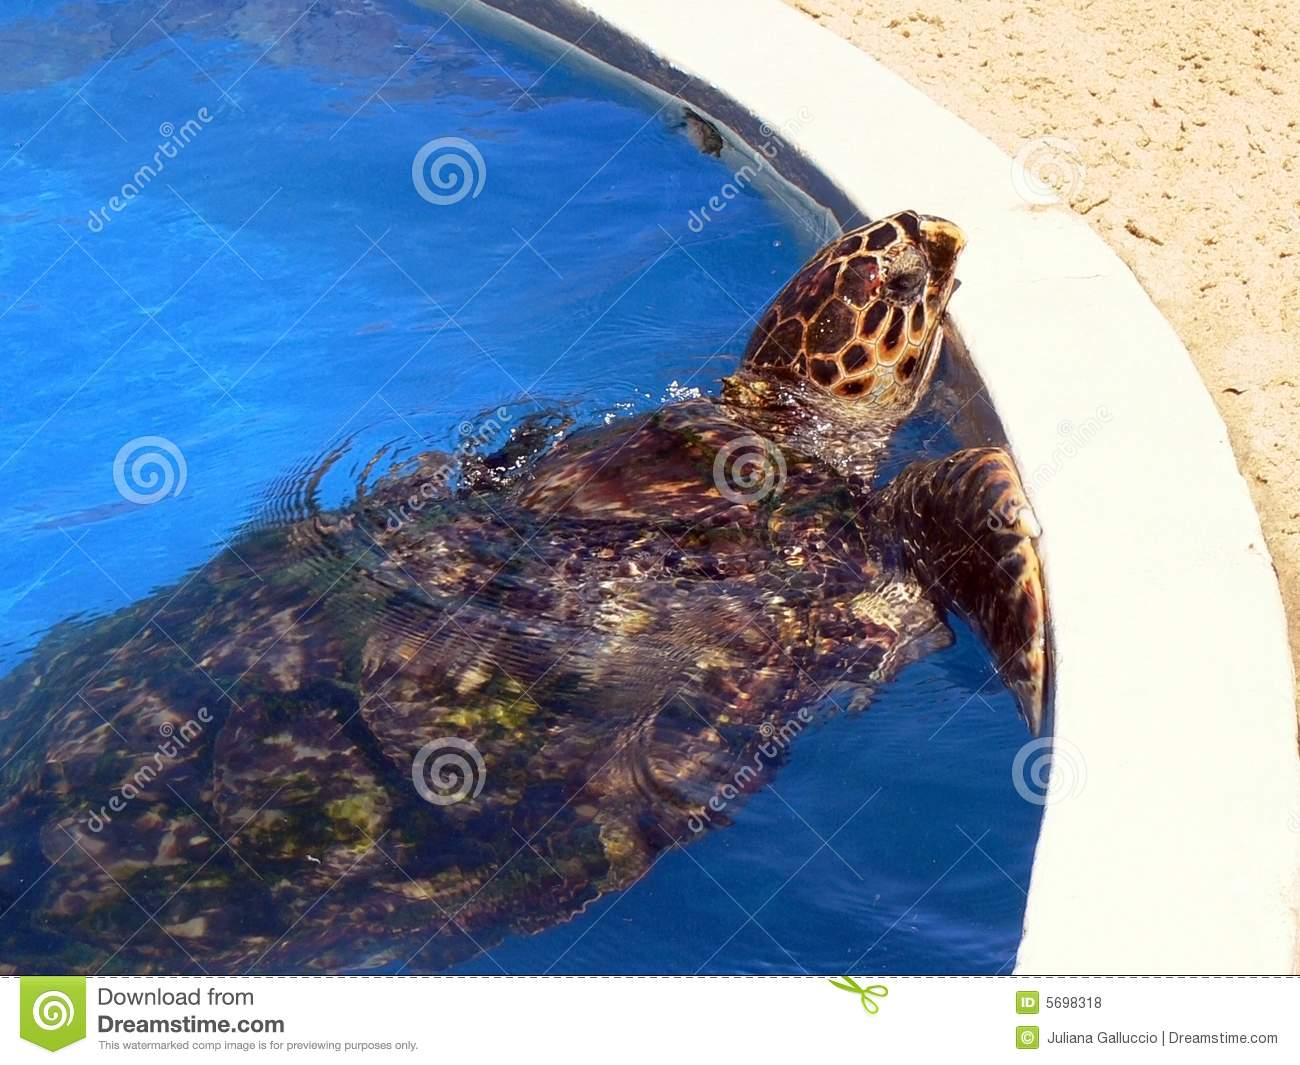 Turtle In Pool Royalty Free Stock Photos Image 5698318